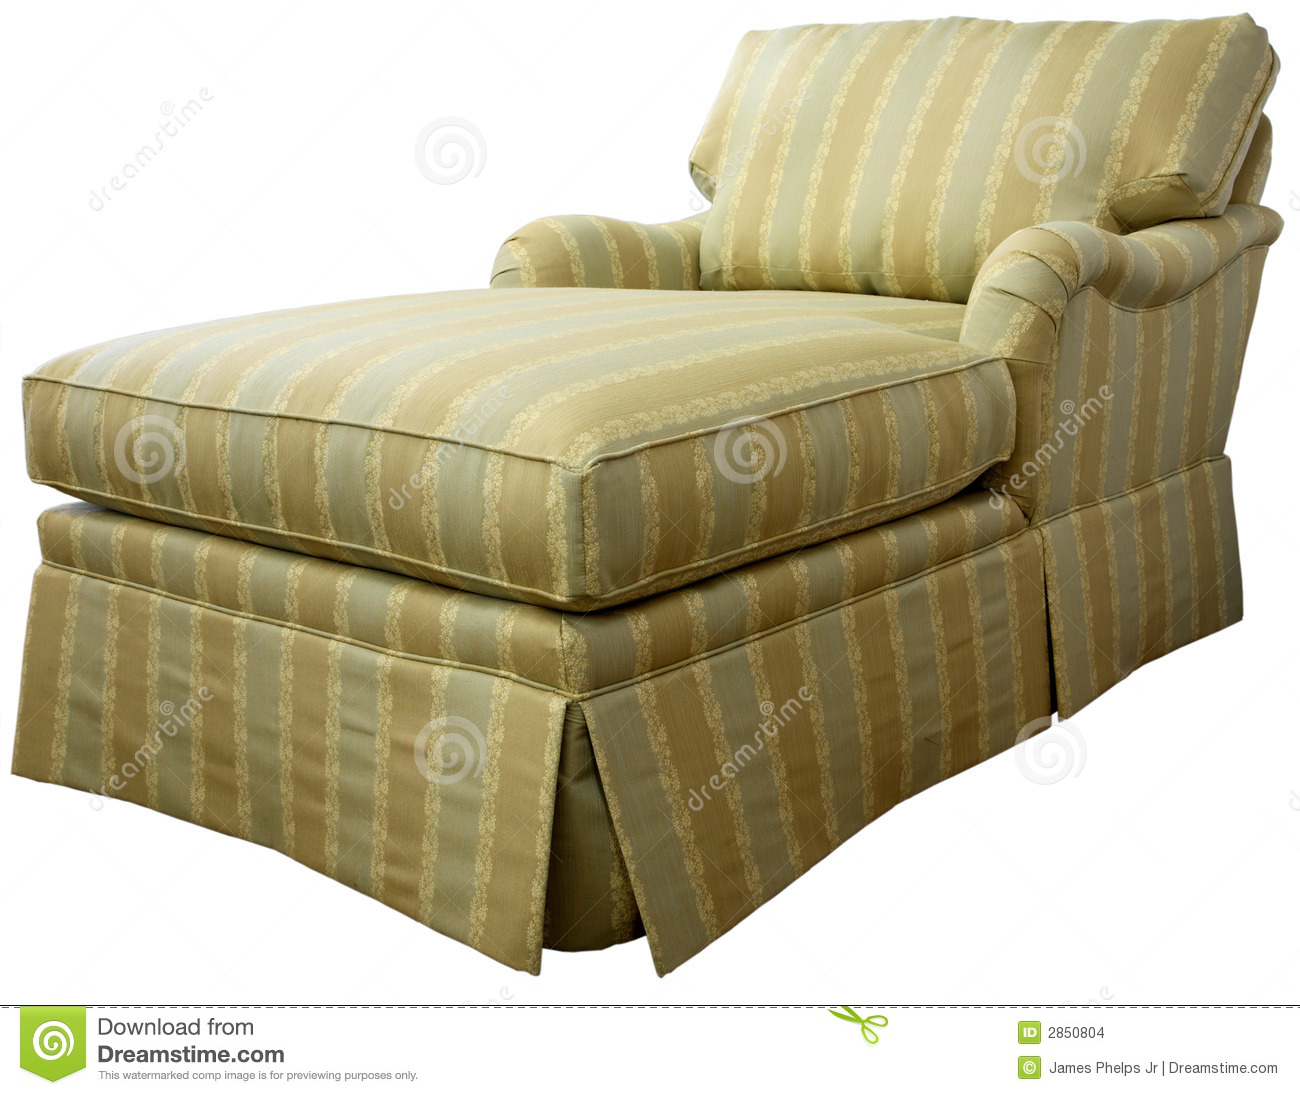 Chaise lounge sofa stock images image 2850804 for Chaise lounge couch